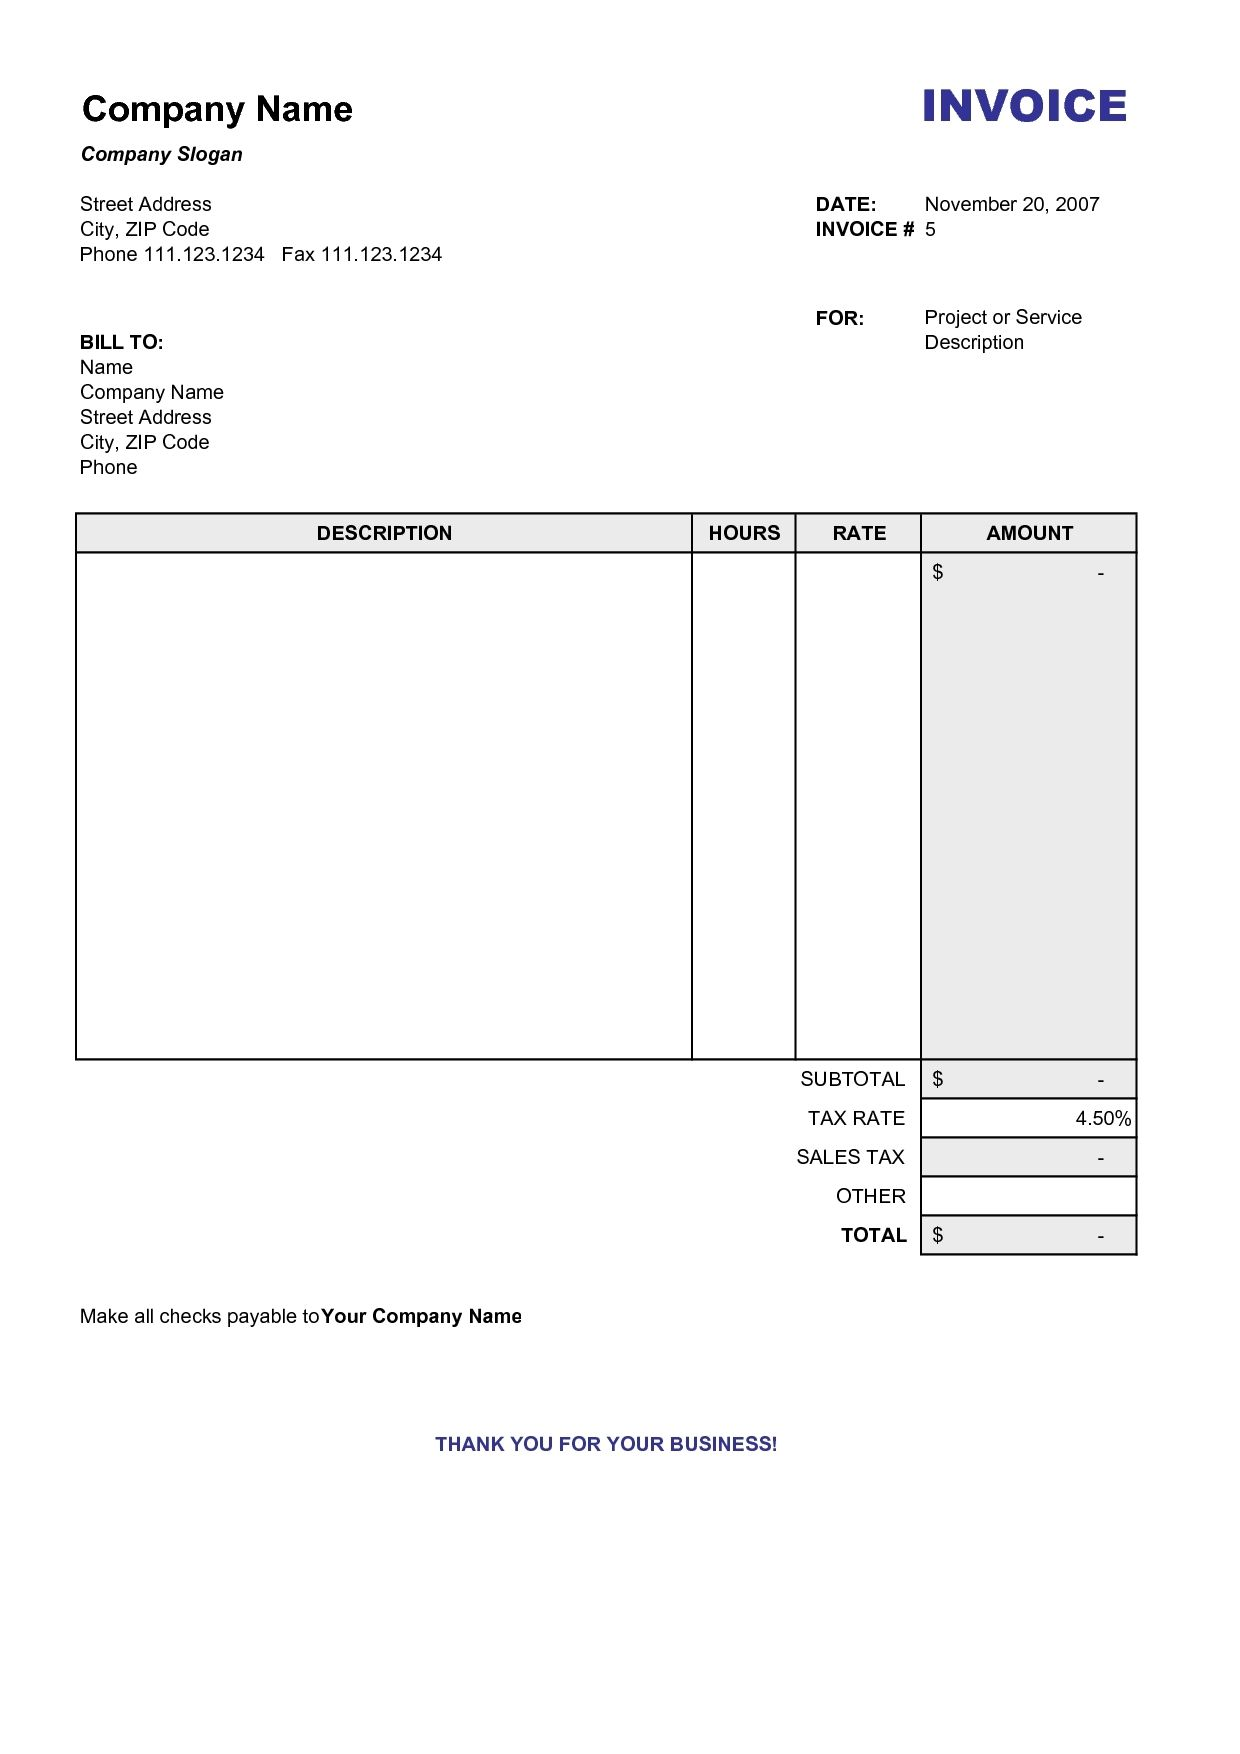 Copy Of A Blank Invoice Invoice Template Free 2016 Copy Of Blank Invoice Within Copy Of A Blank Invoice